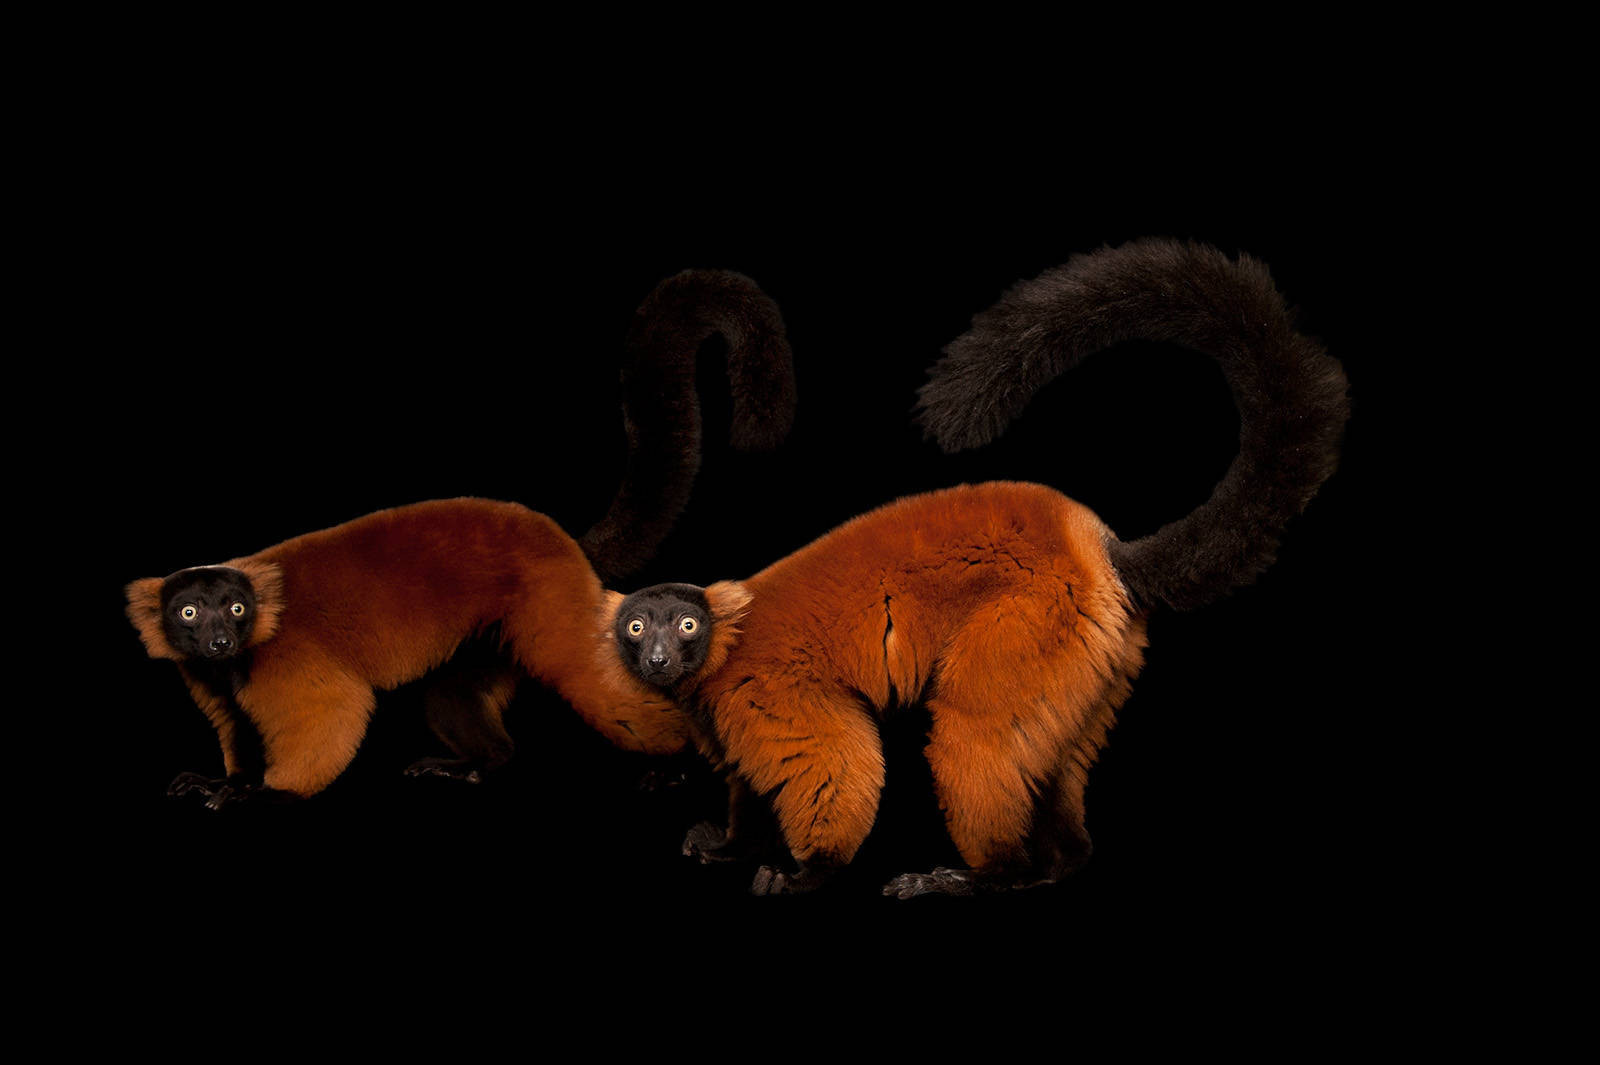 Picture of endangered red ruffed lemurs (Varecia rubra) at the Miller Park Zoo.